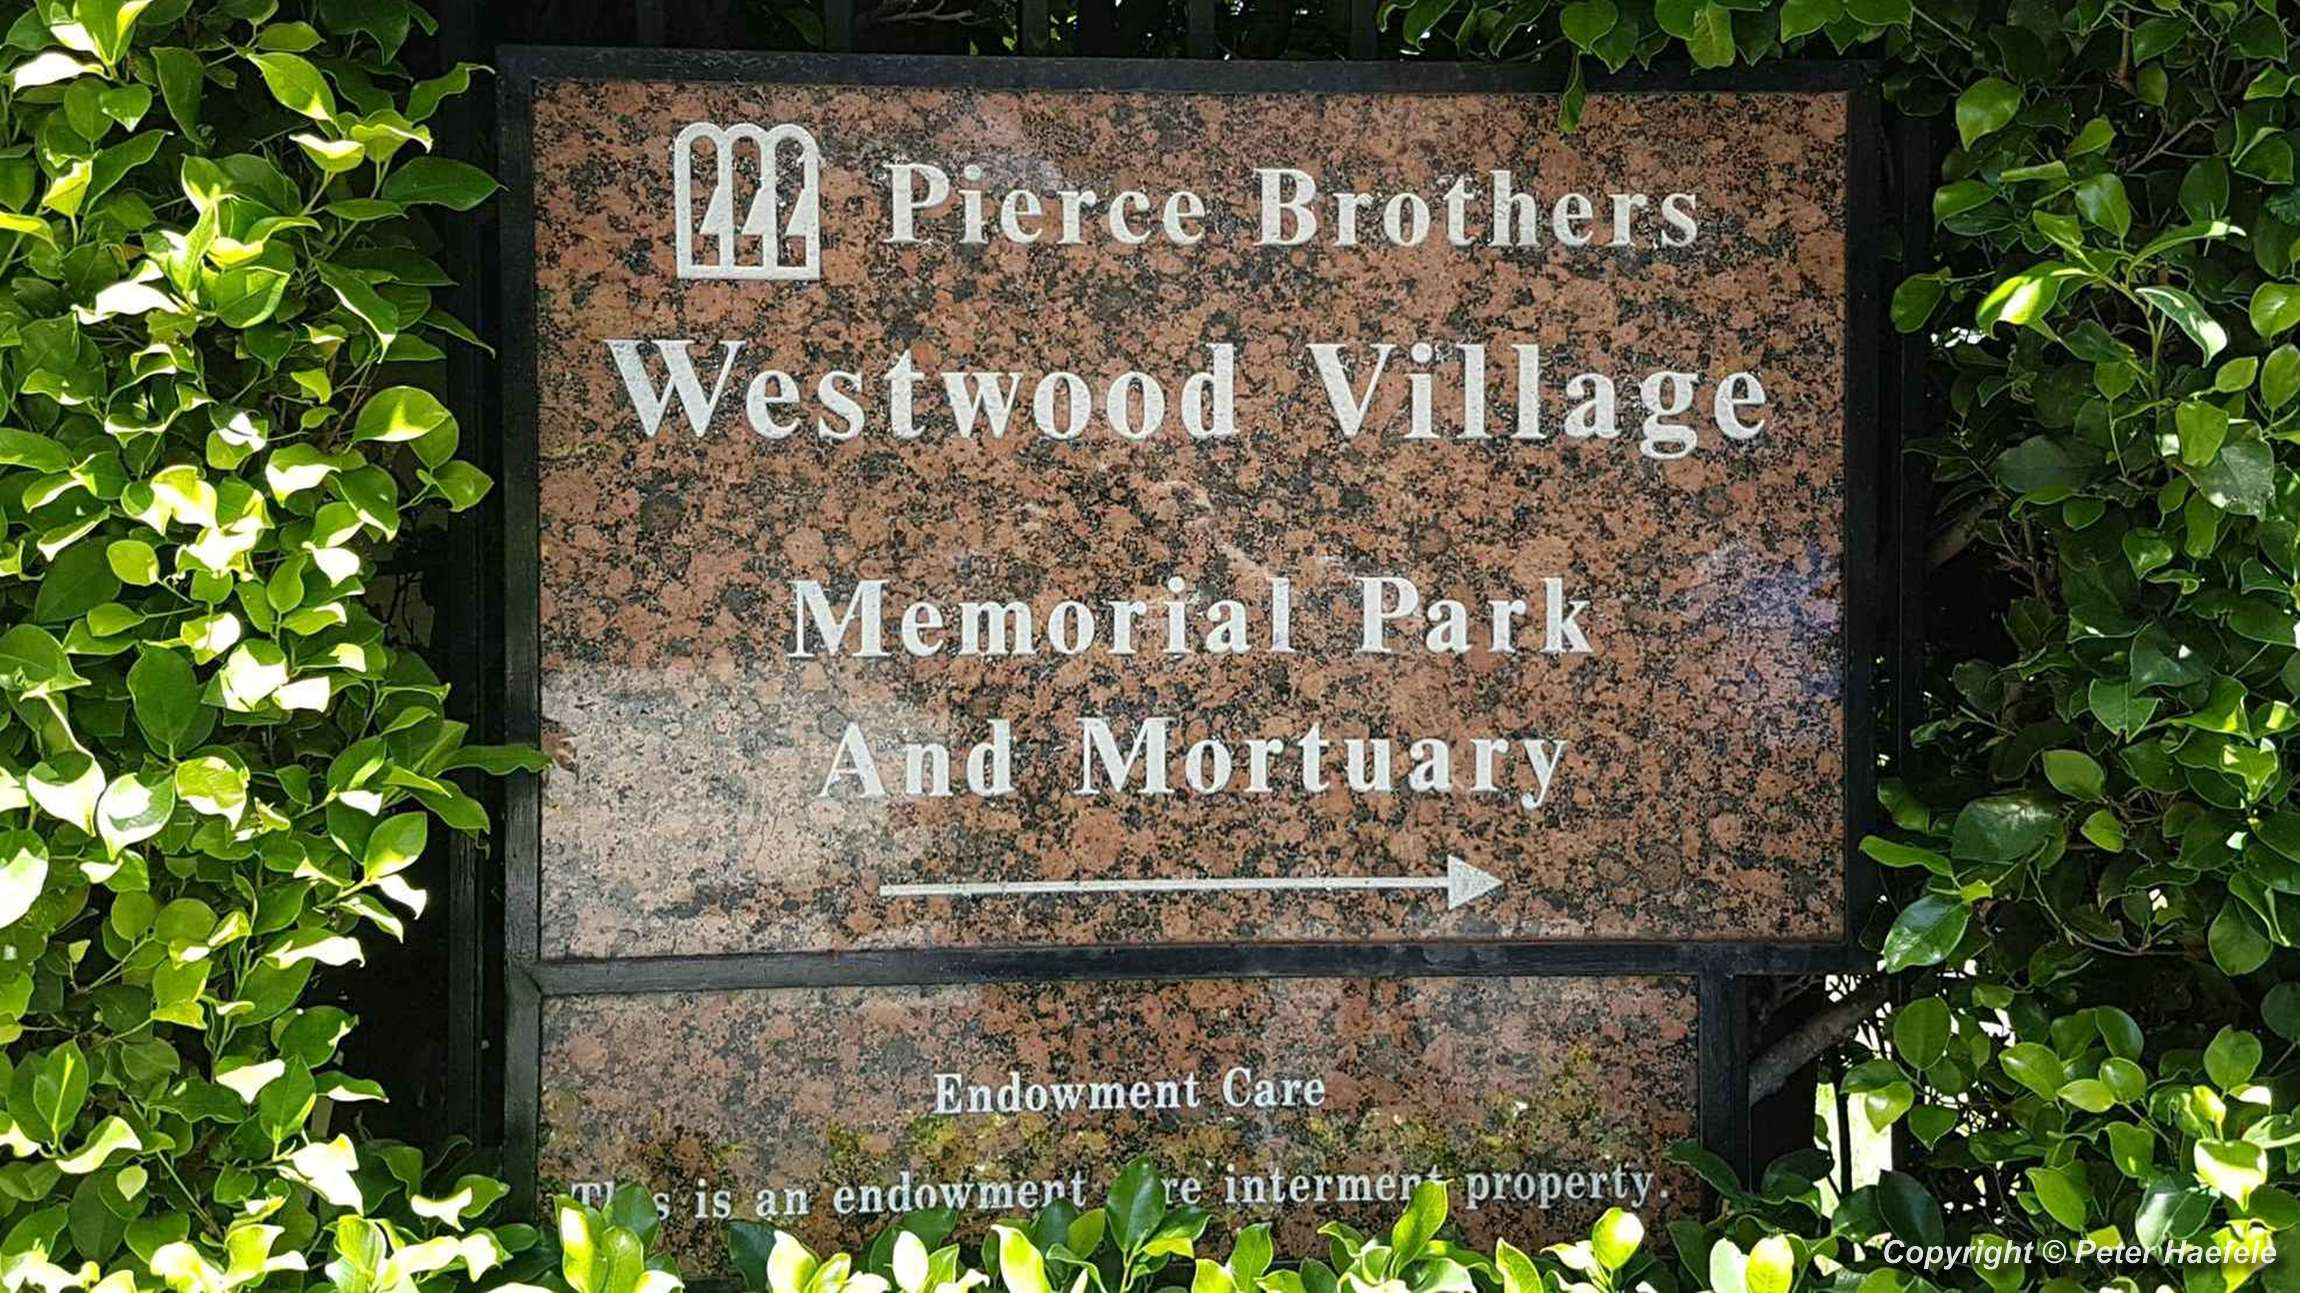 Pierce Brothers Westwood Village Memorial Park - © Peter Haefele Fotografie